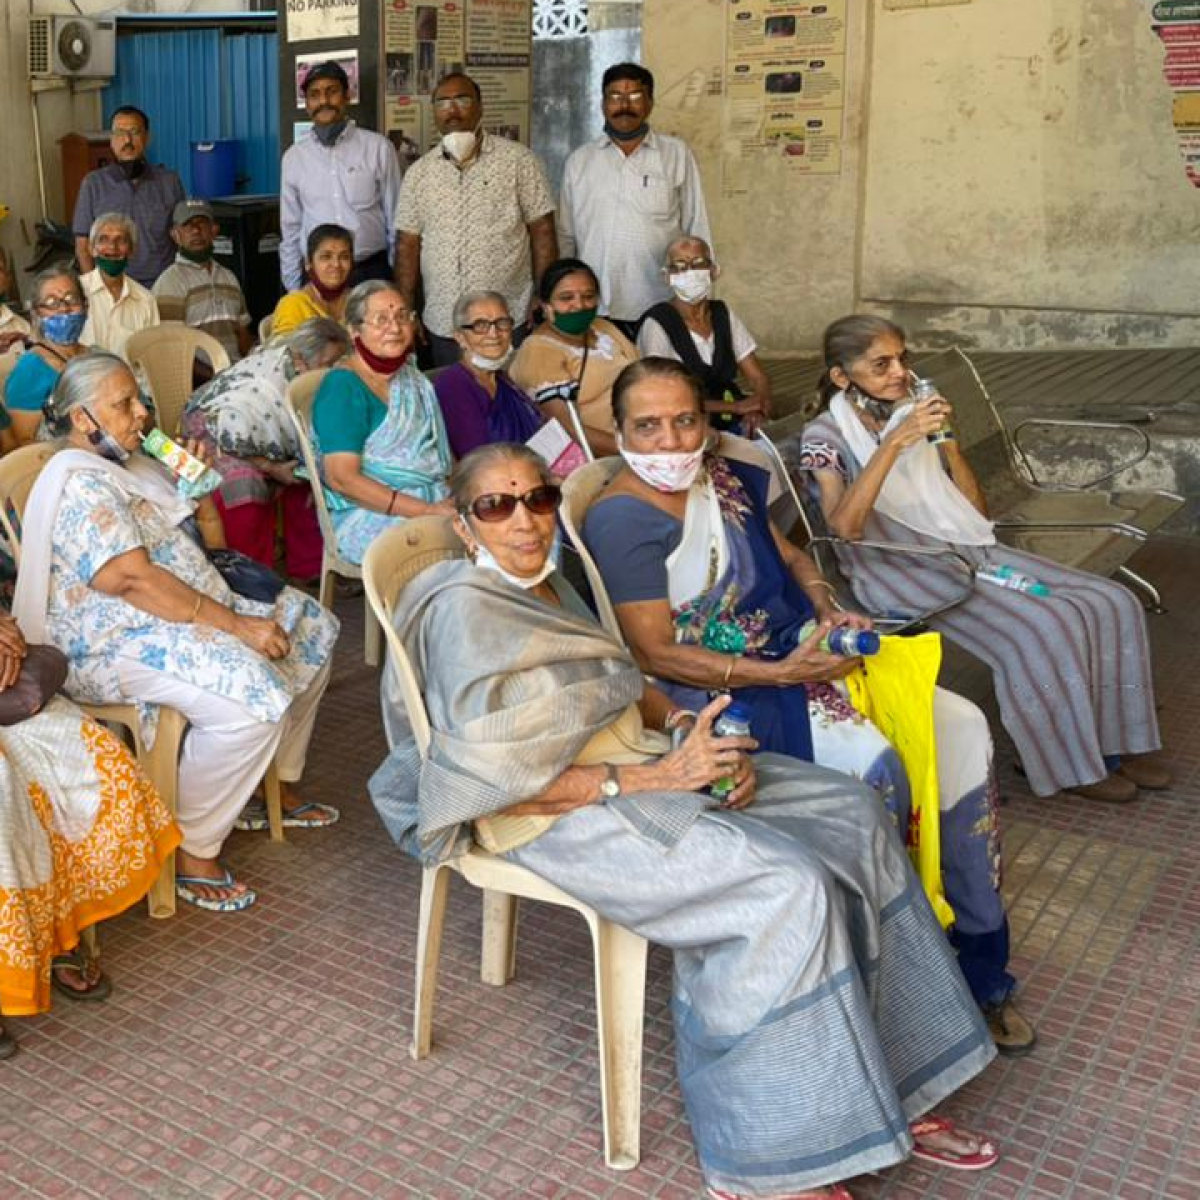 Mira-Bhayandar: MBMC stares at COVID-19 vaccine supply shortage amidst efforts to ramp up vaccination drive